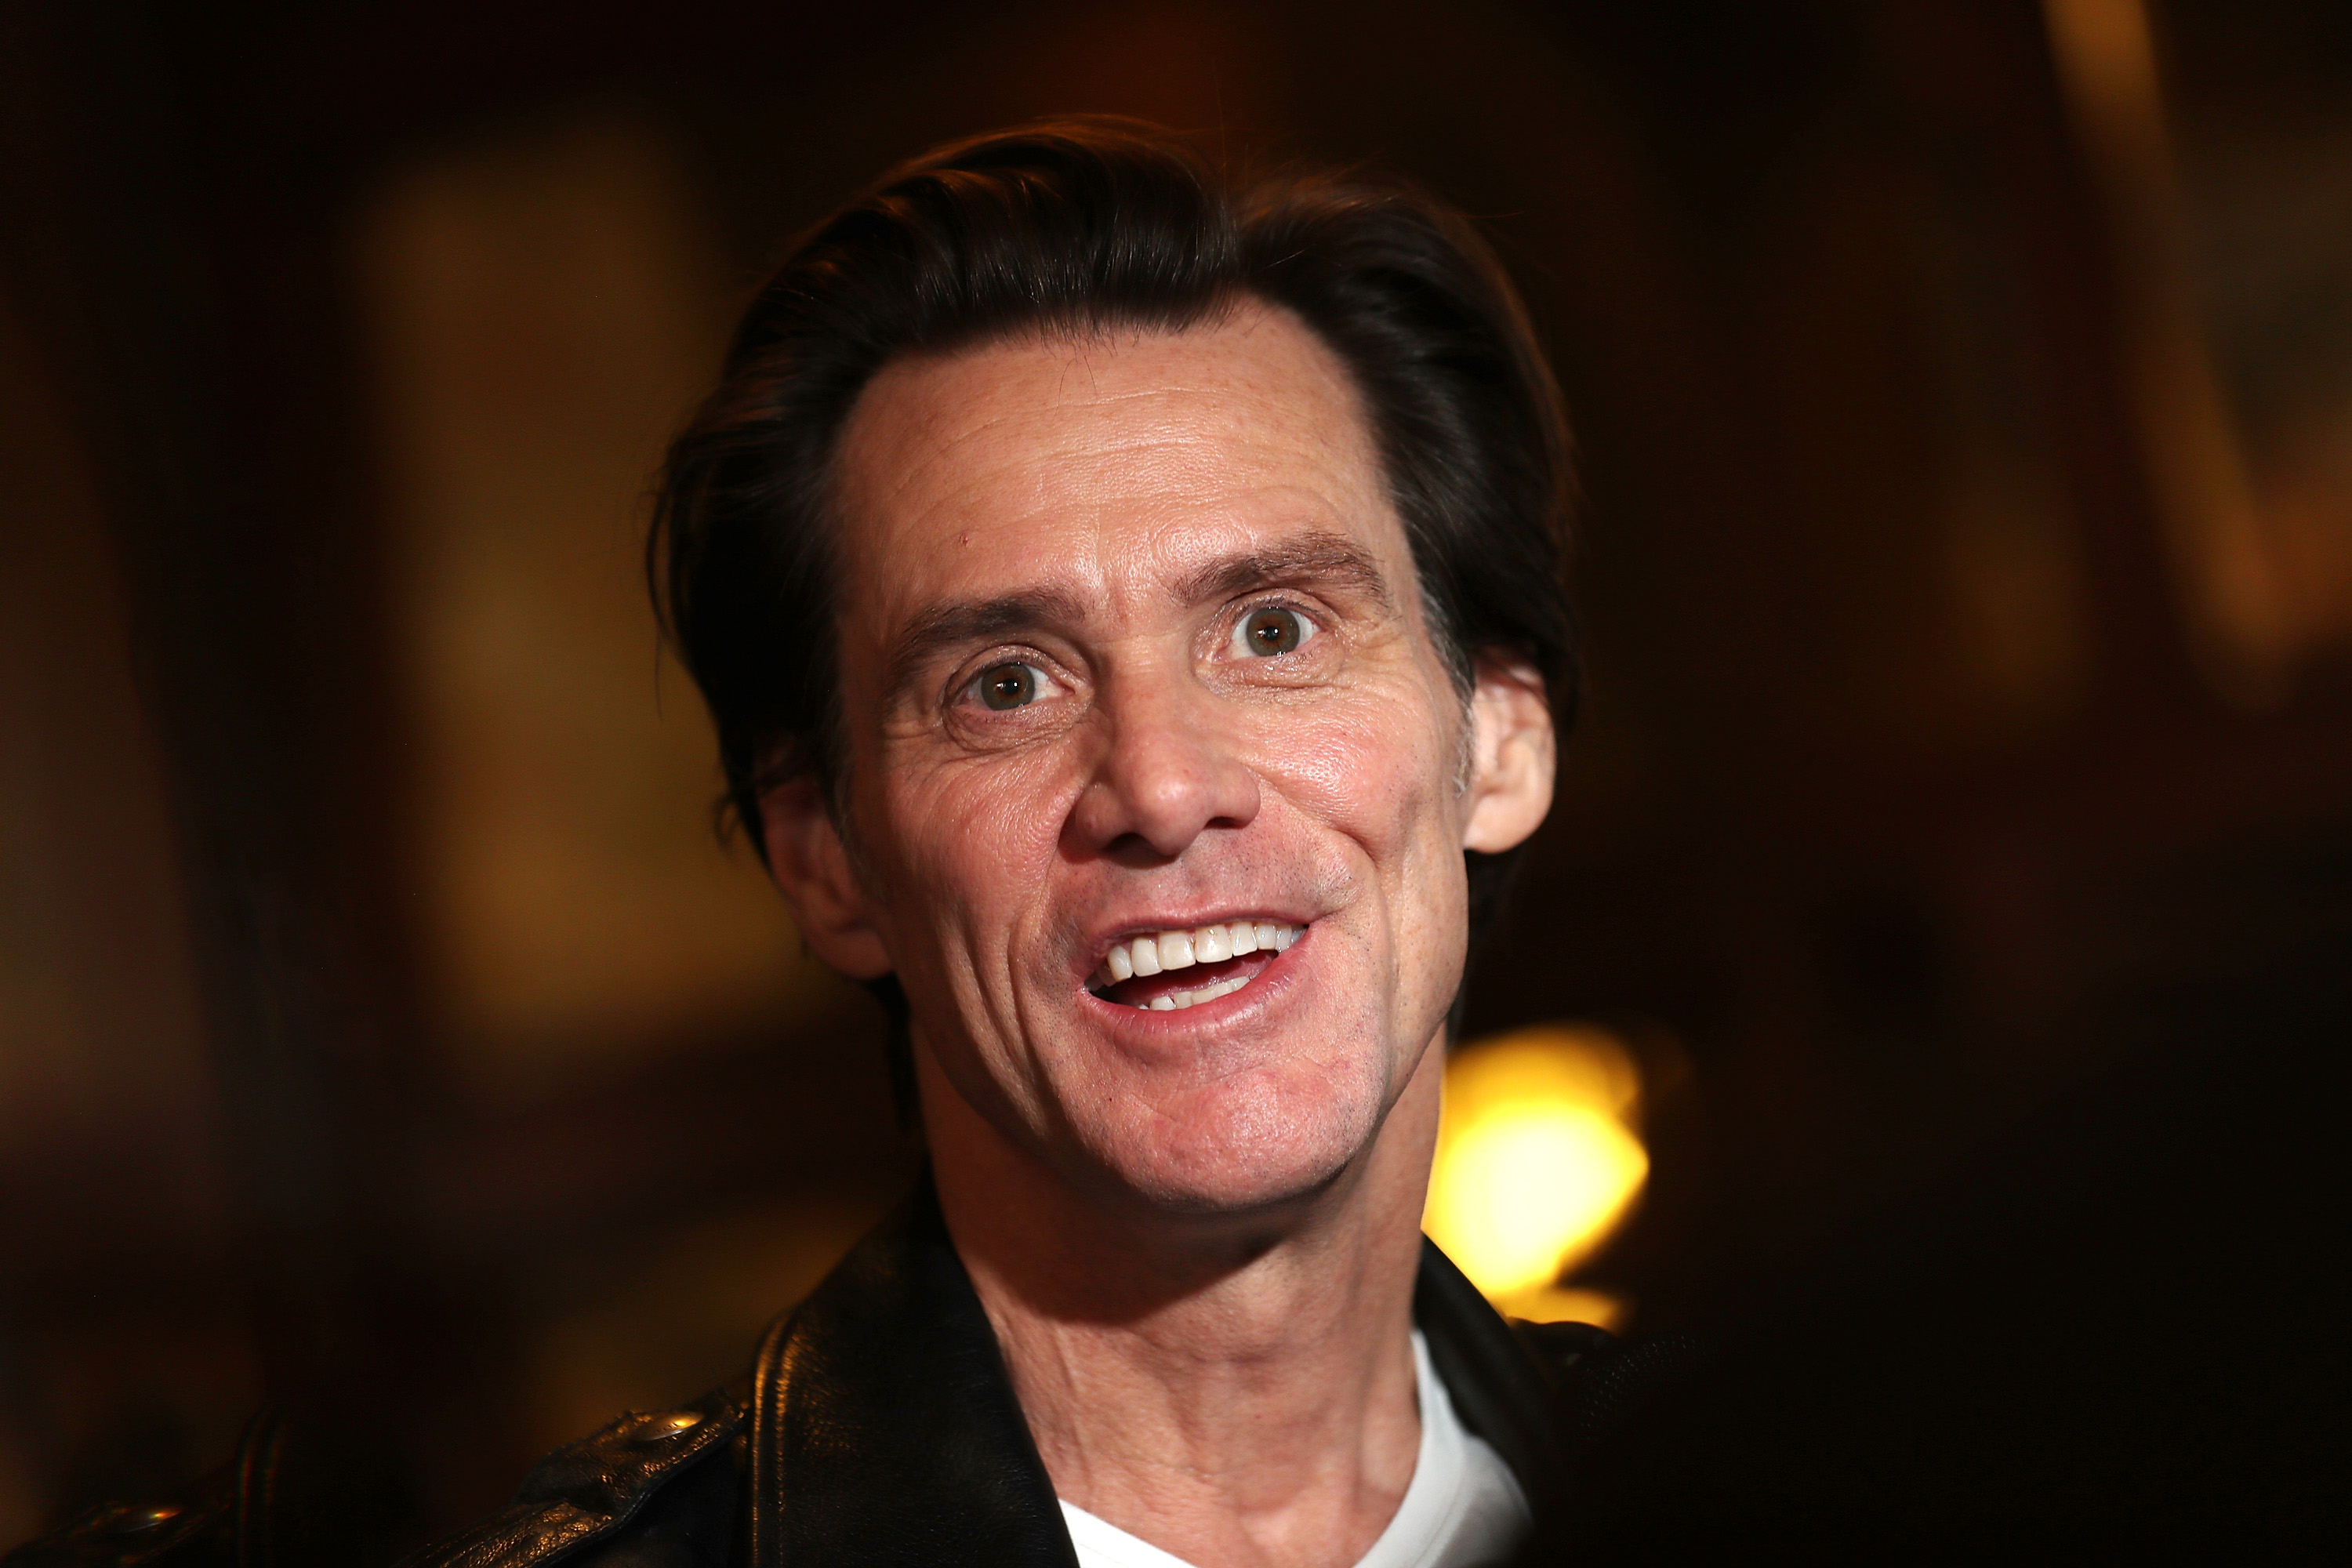 Here's What Jim Carrey Could Make If He Said Yes to Stand-Up Again